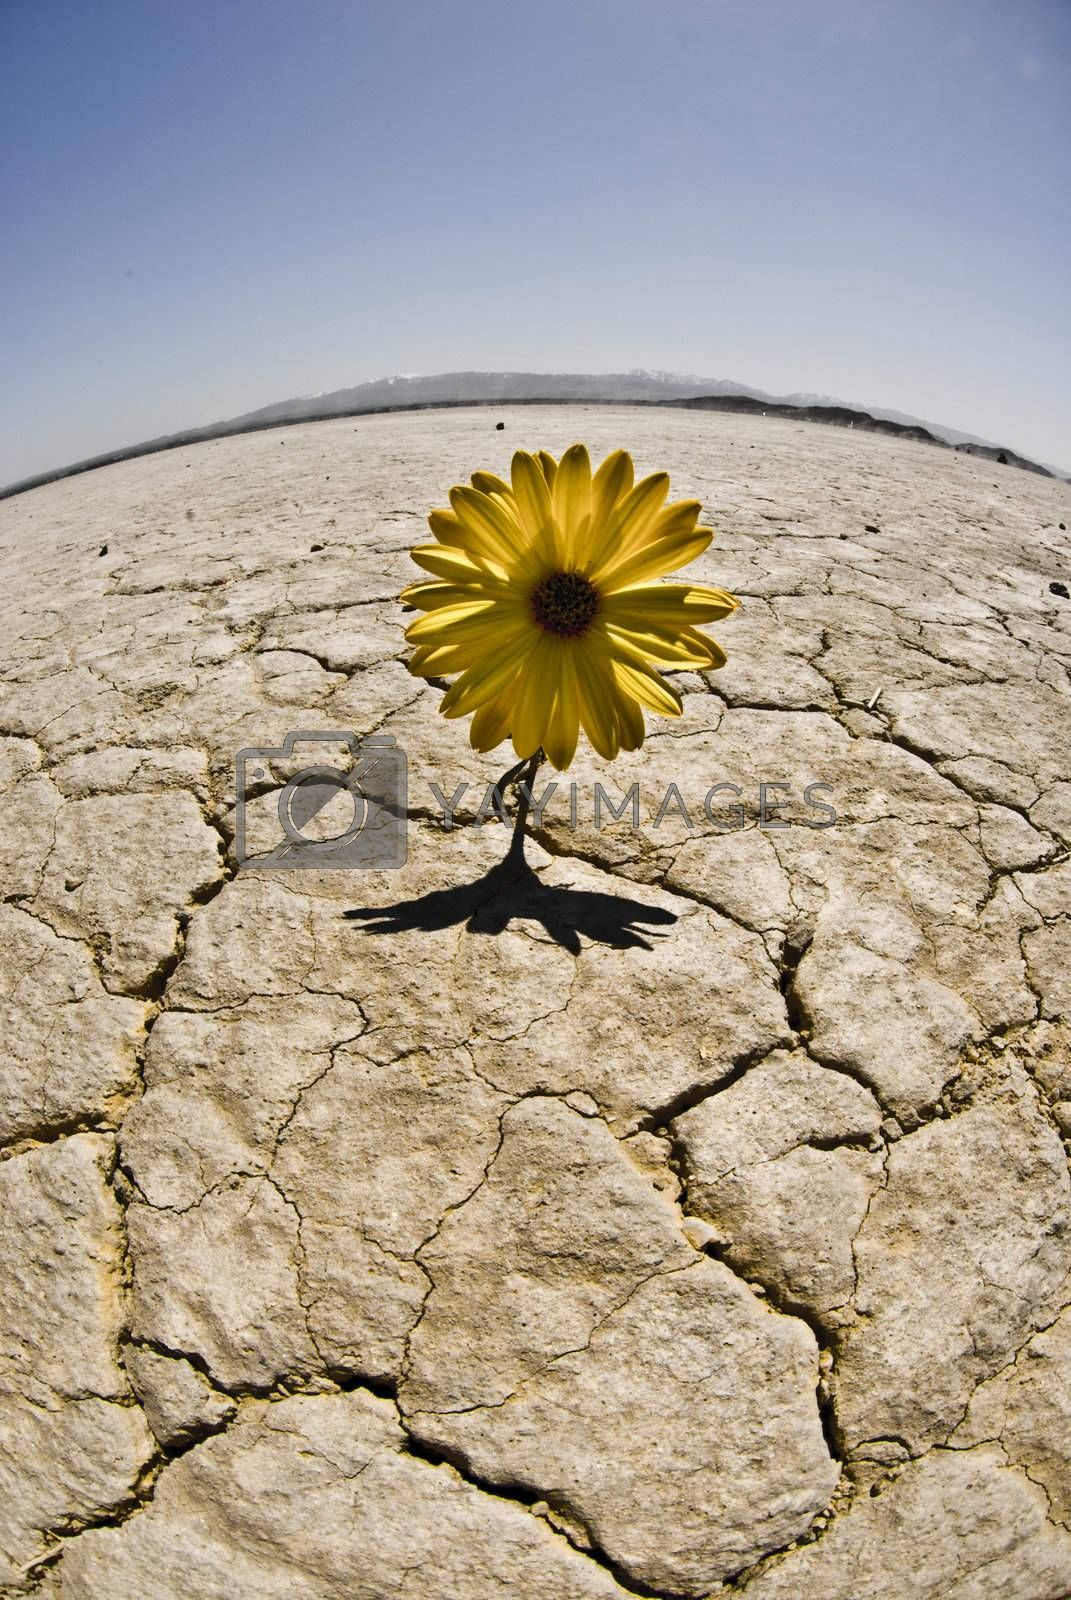 Flower grows in a dried lake bed